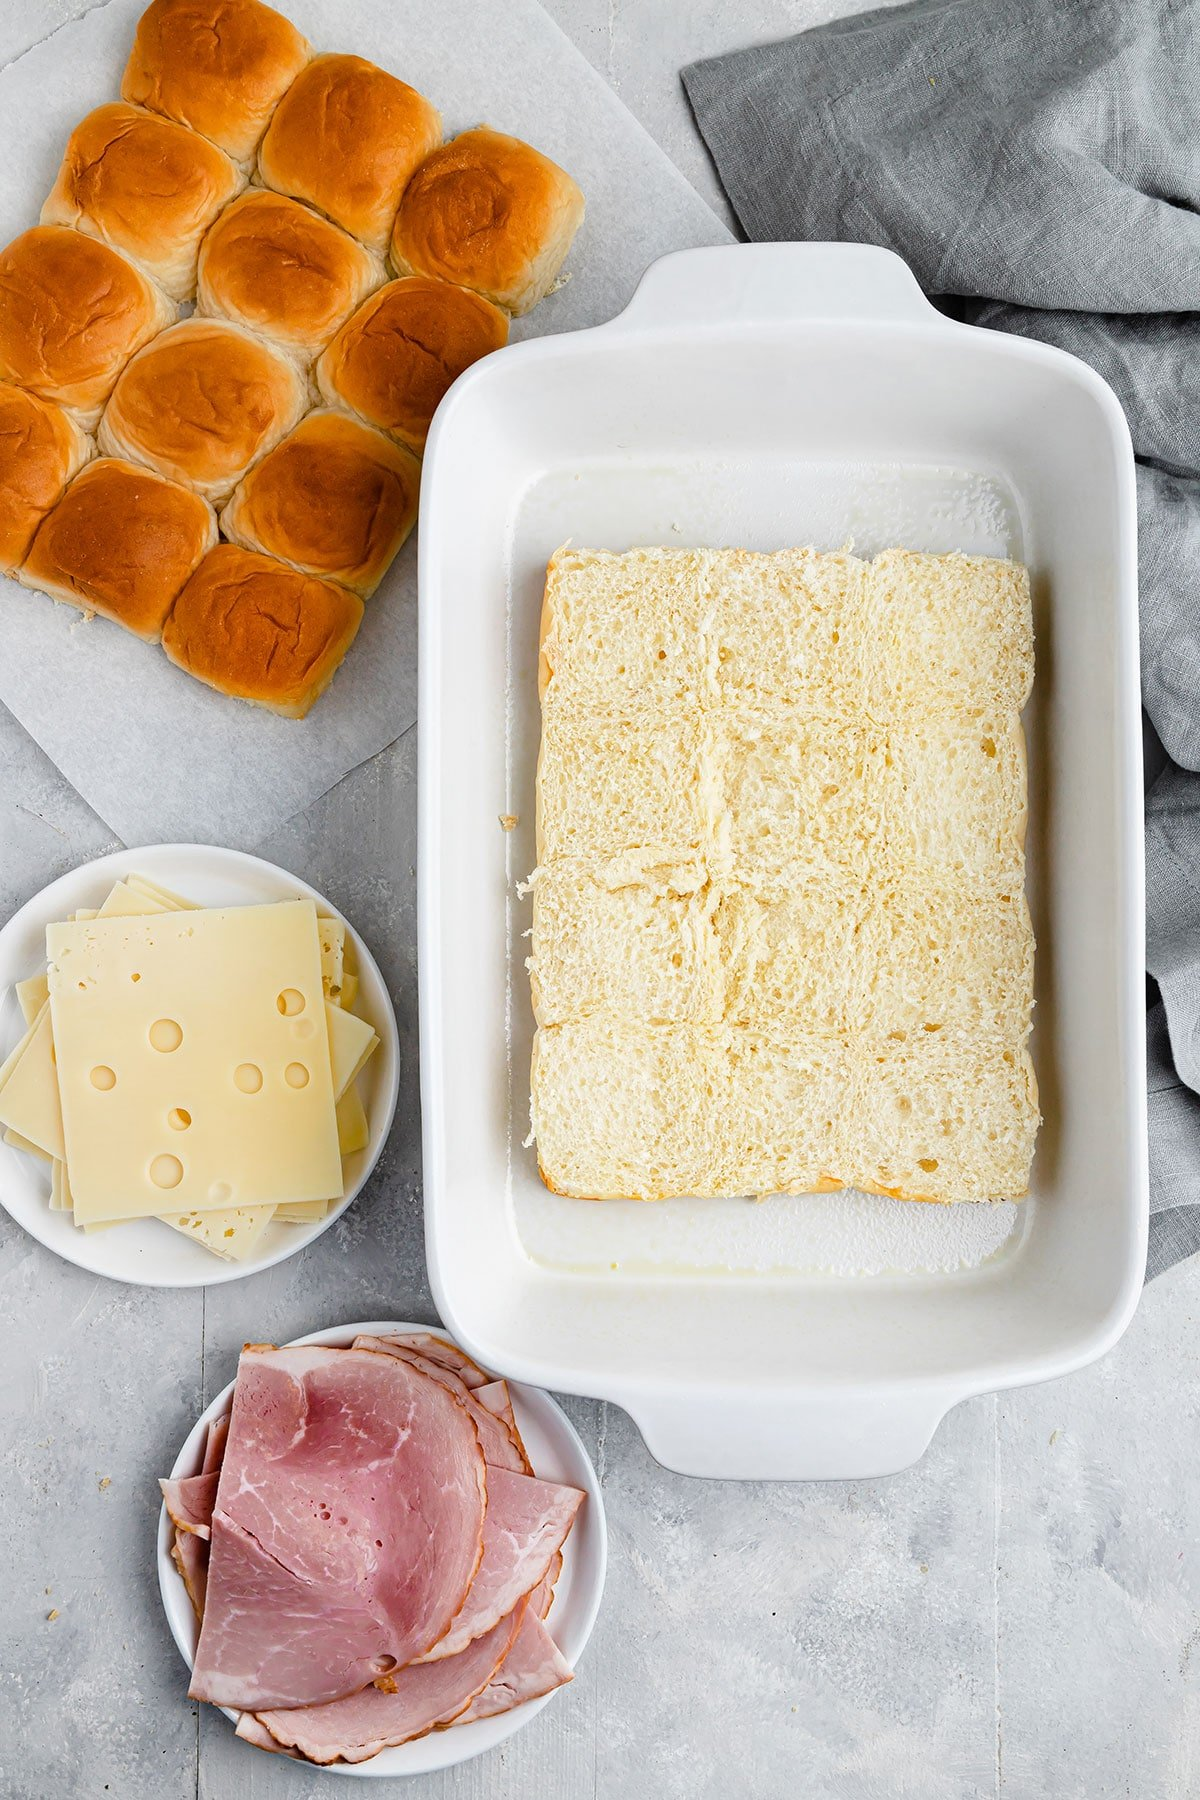 Halved Hawaiian rolls, Swiss cheese and ham on a gray countertop beside a kitchen towel